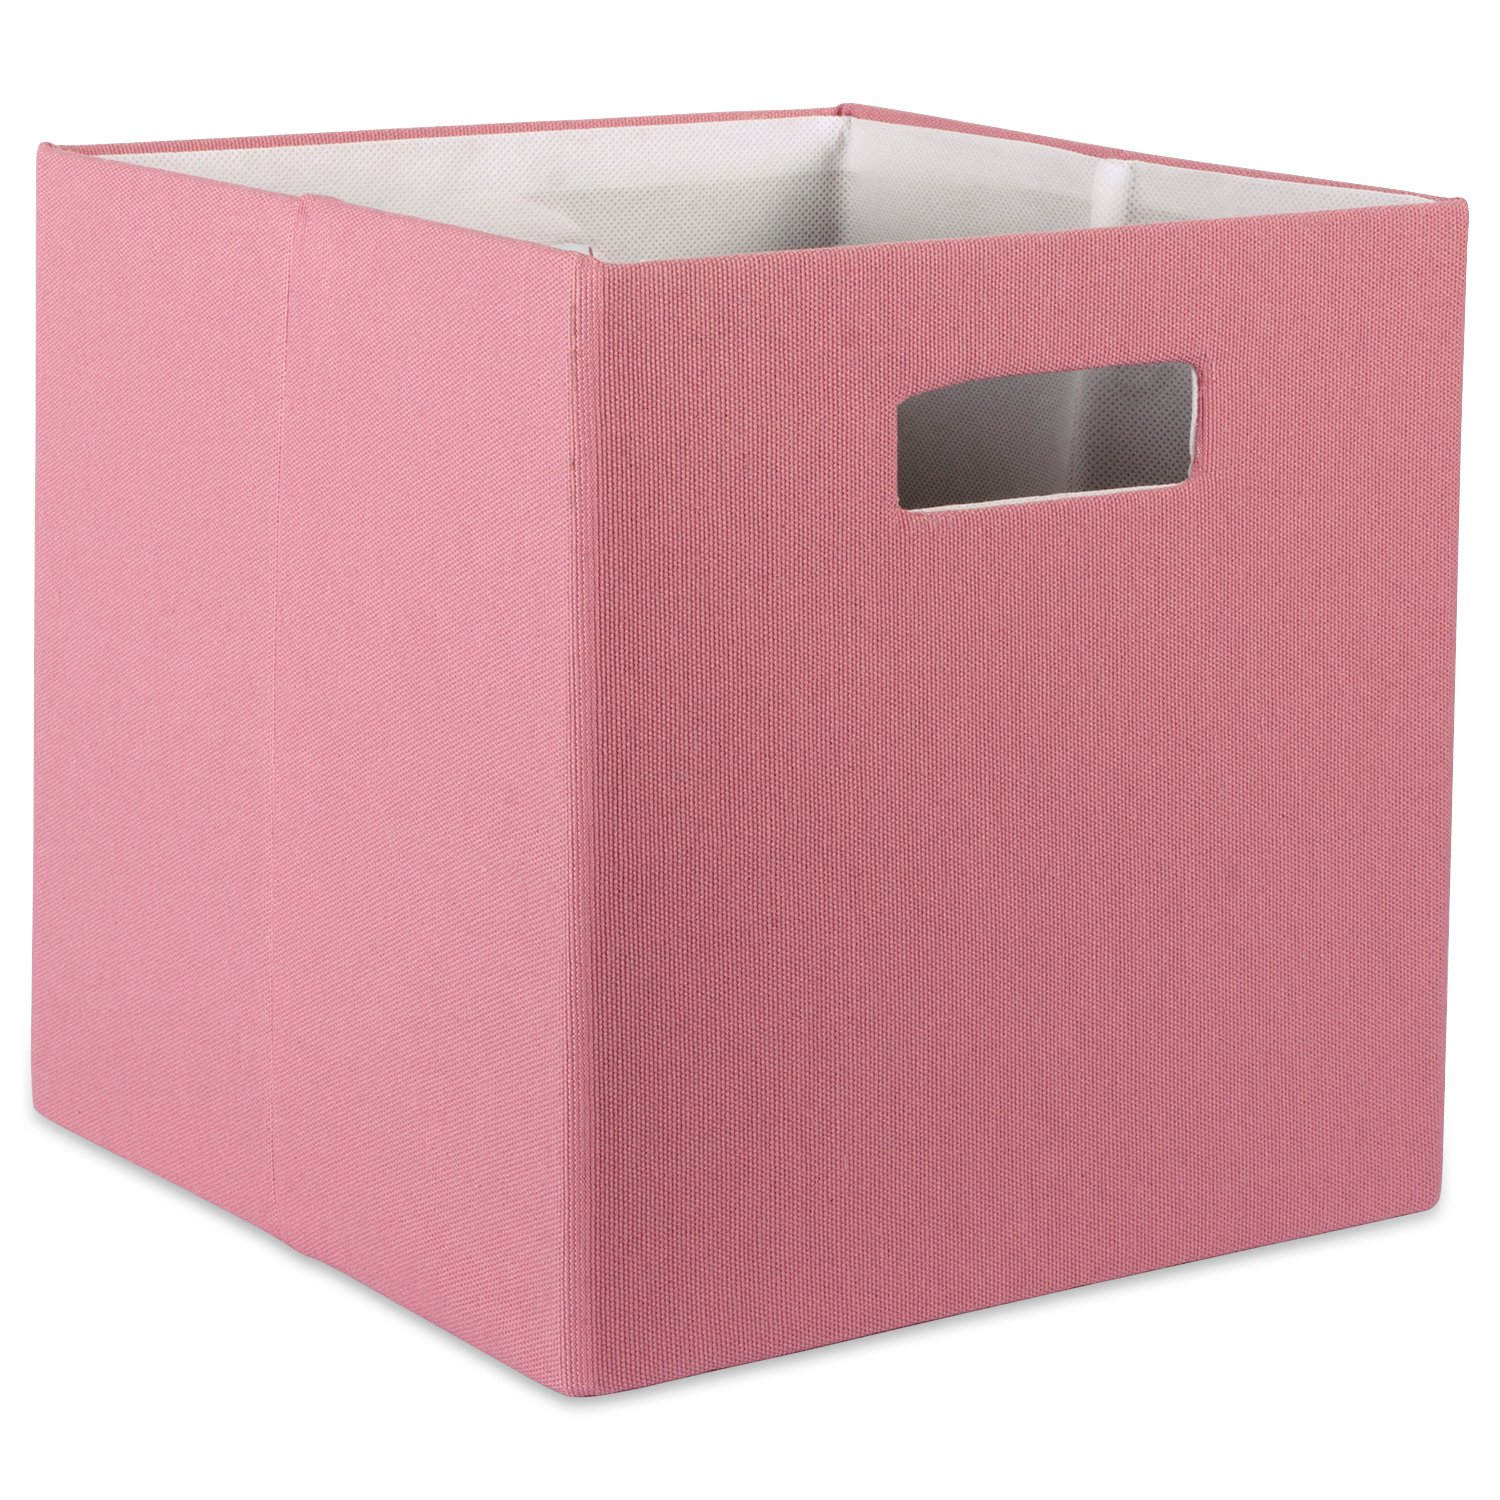 "DII Hard Sided Collapsible Fabric Storage Container for Nursery, Offices, & Home Organization, (11x11x11"") - Solid Rose"